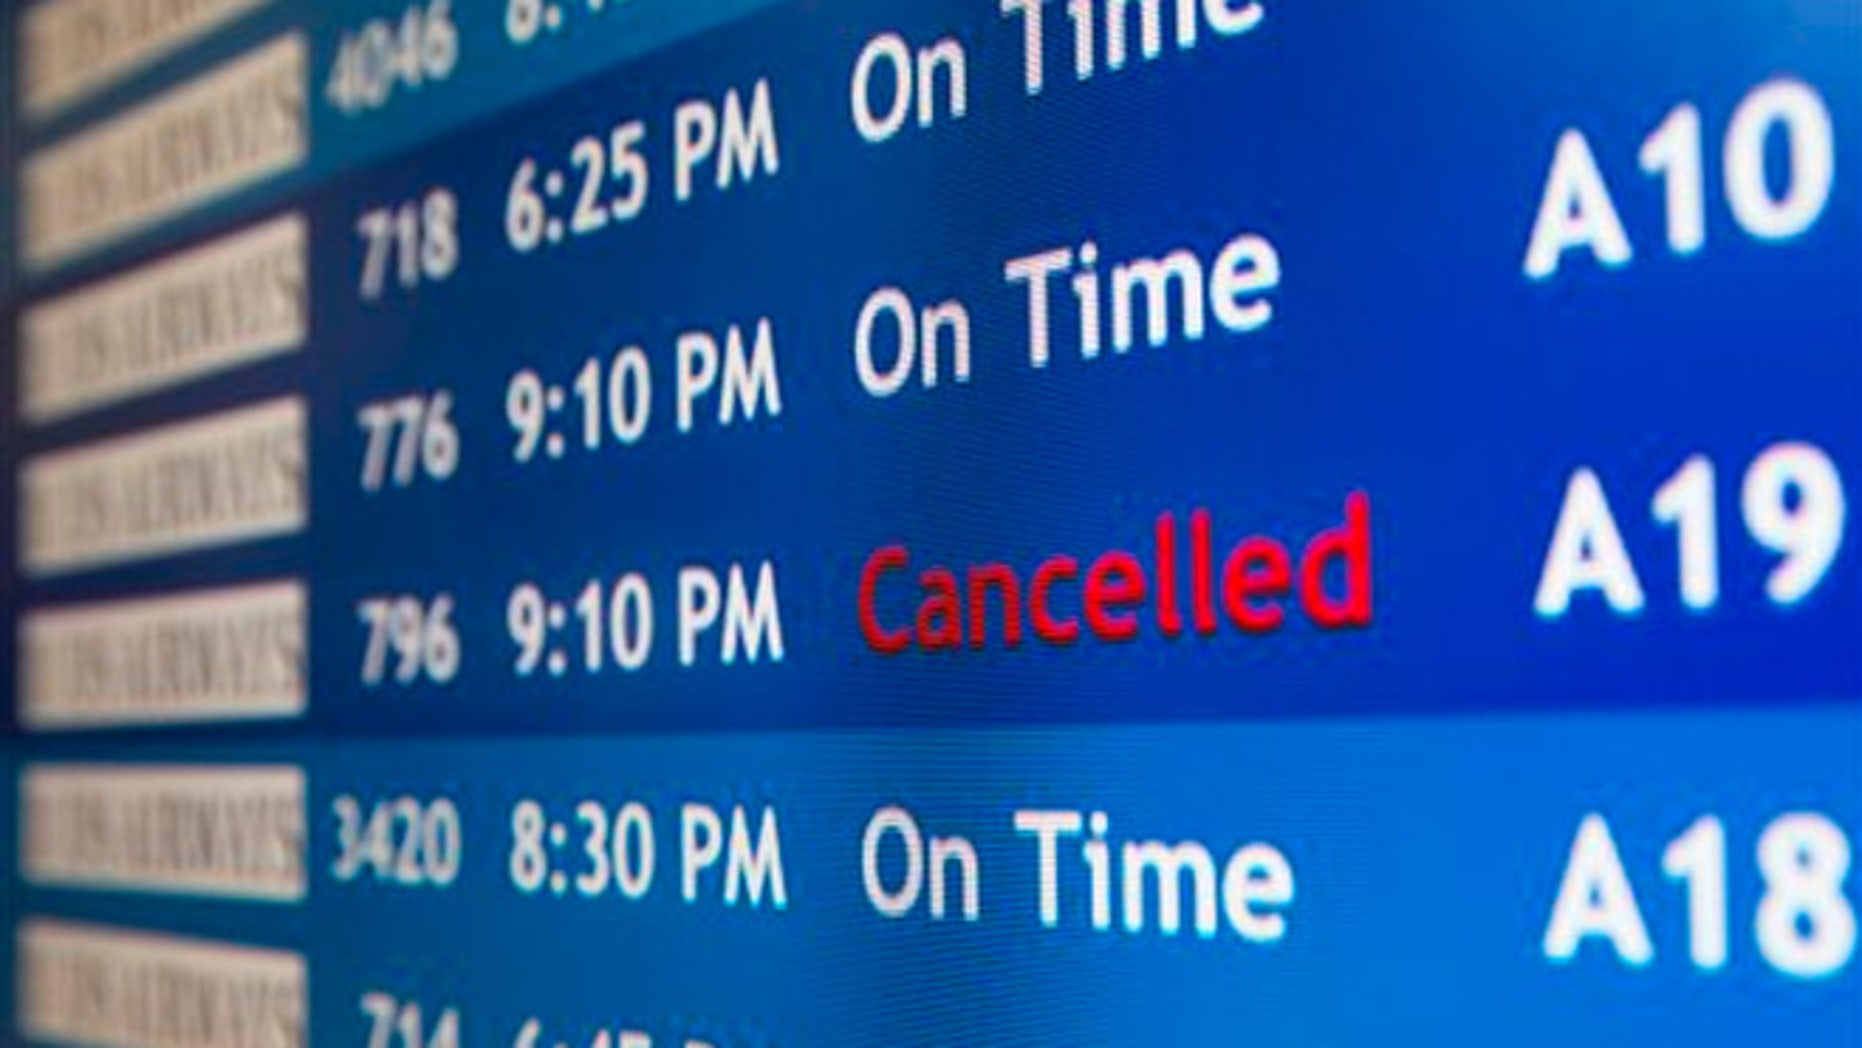 Airlines are preemptively canceling flights as winter storm warnings were posted from Oklahoma to New Jersey and from Illinois to the Deep South.